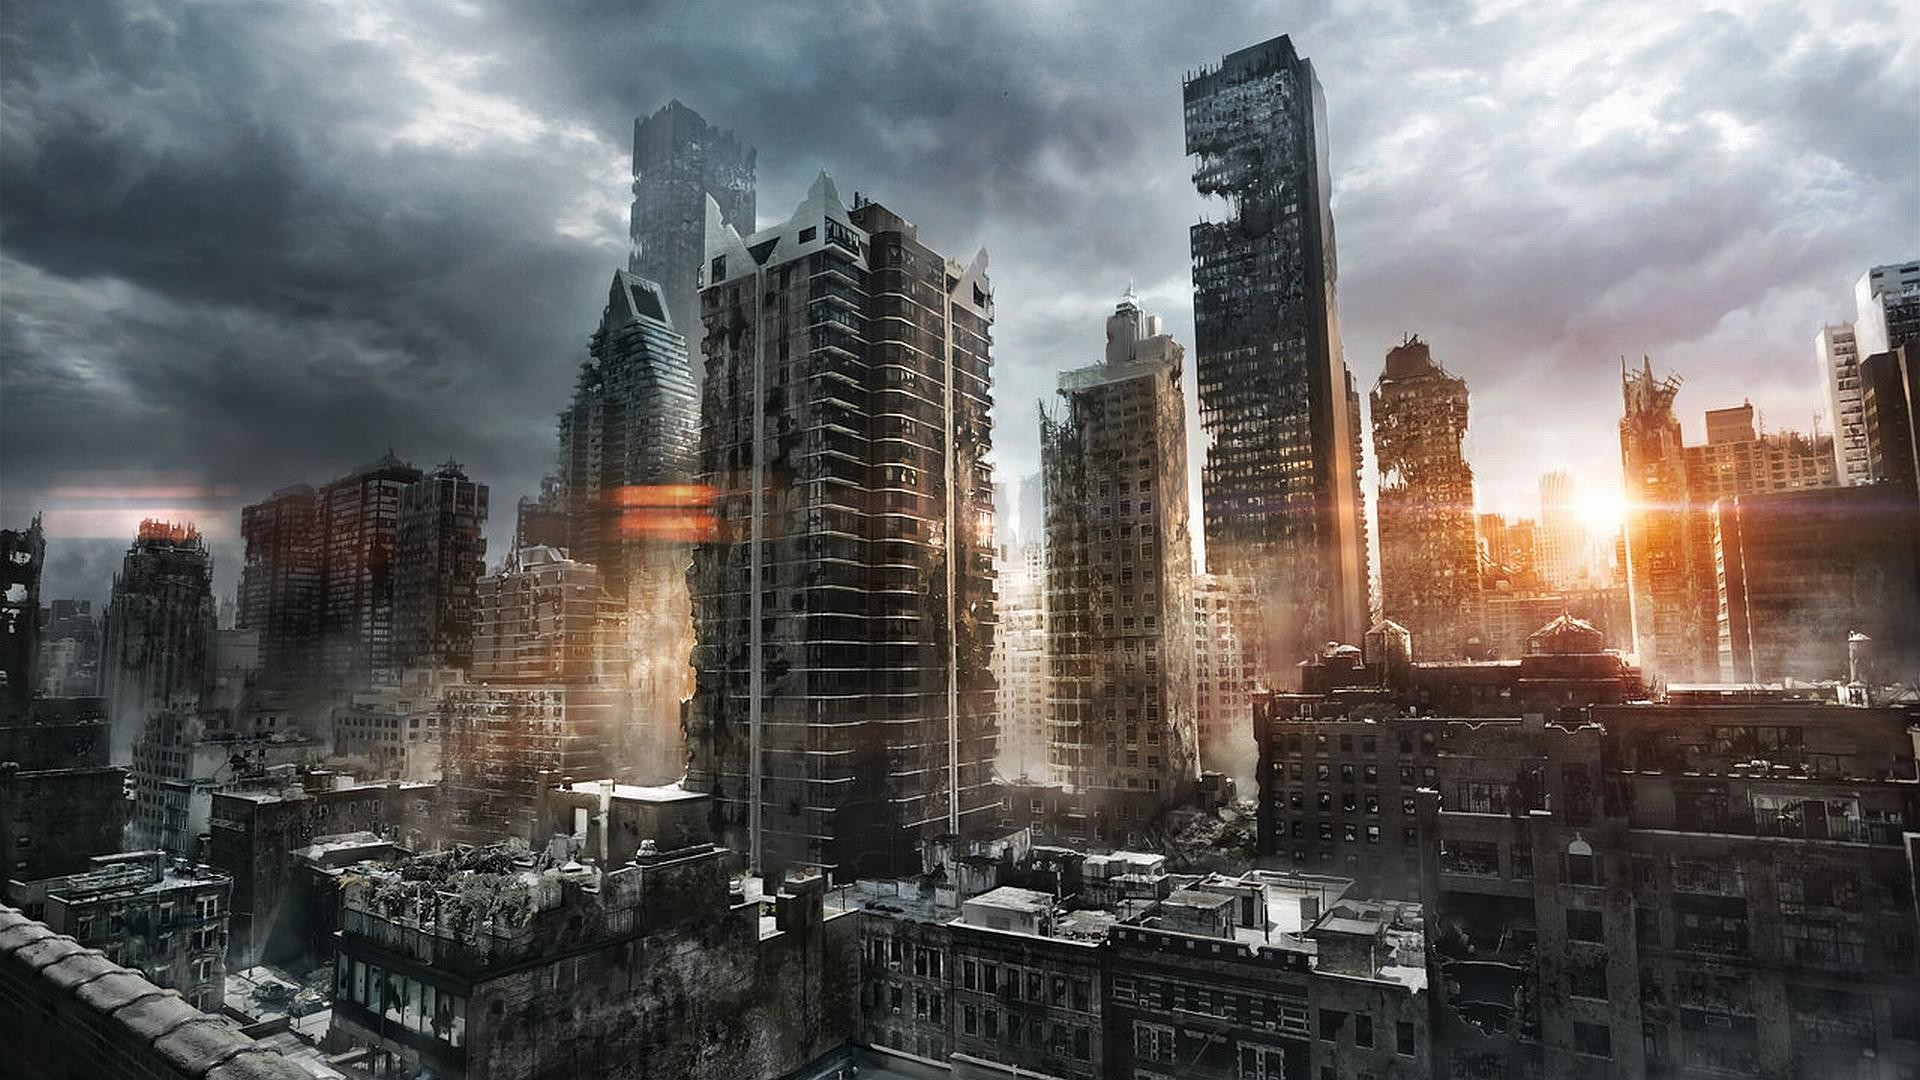 Post Apocalyptic/Dystopian Wallpaper Dump! (As requested by  RayquazasDarkBrother) – Album on